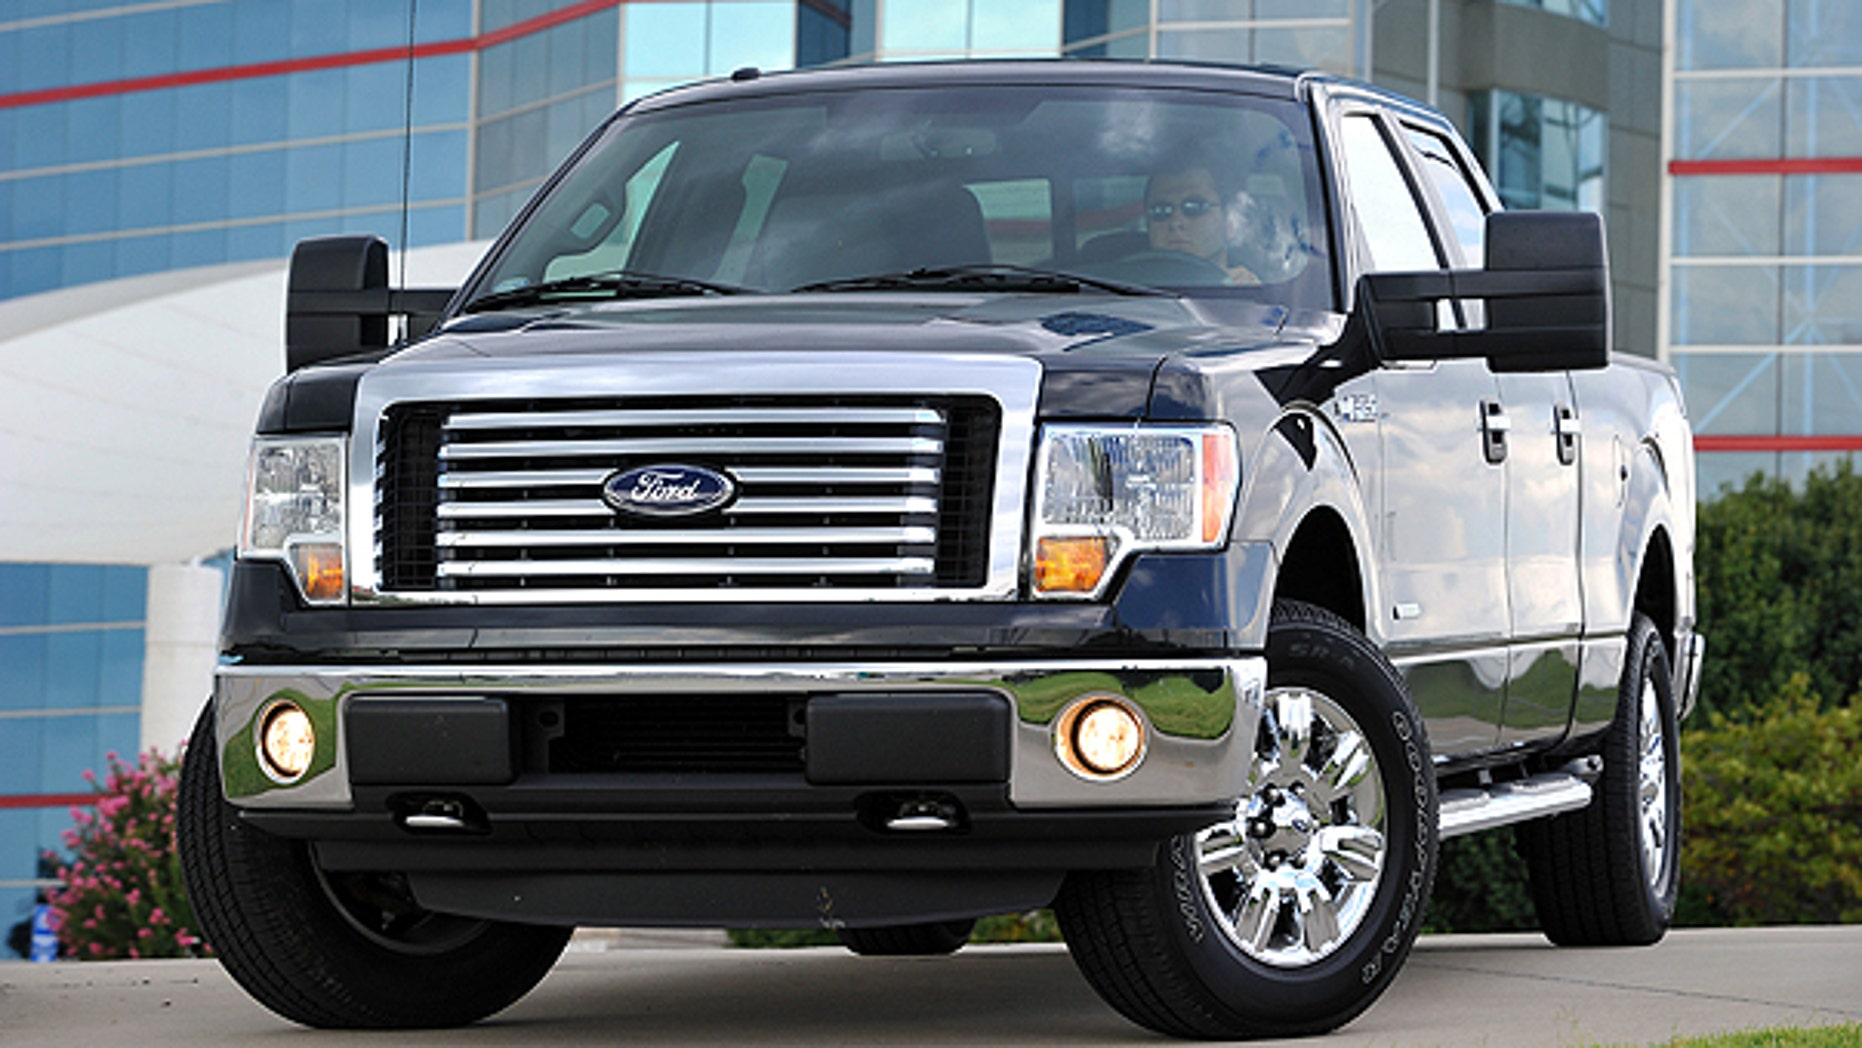 Spet. 22: This photo provided by the Ford Motor Co. shows the 2011 Ford F-150 Pick-up truck. Trucks outsold cars in October by the widest margin since 2007.